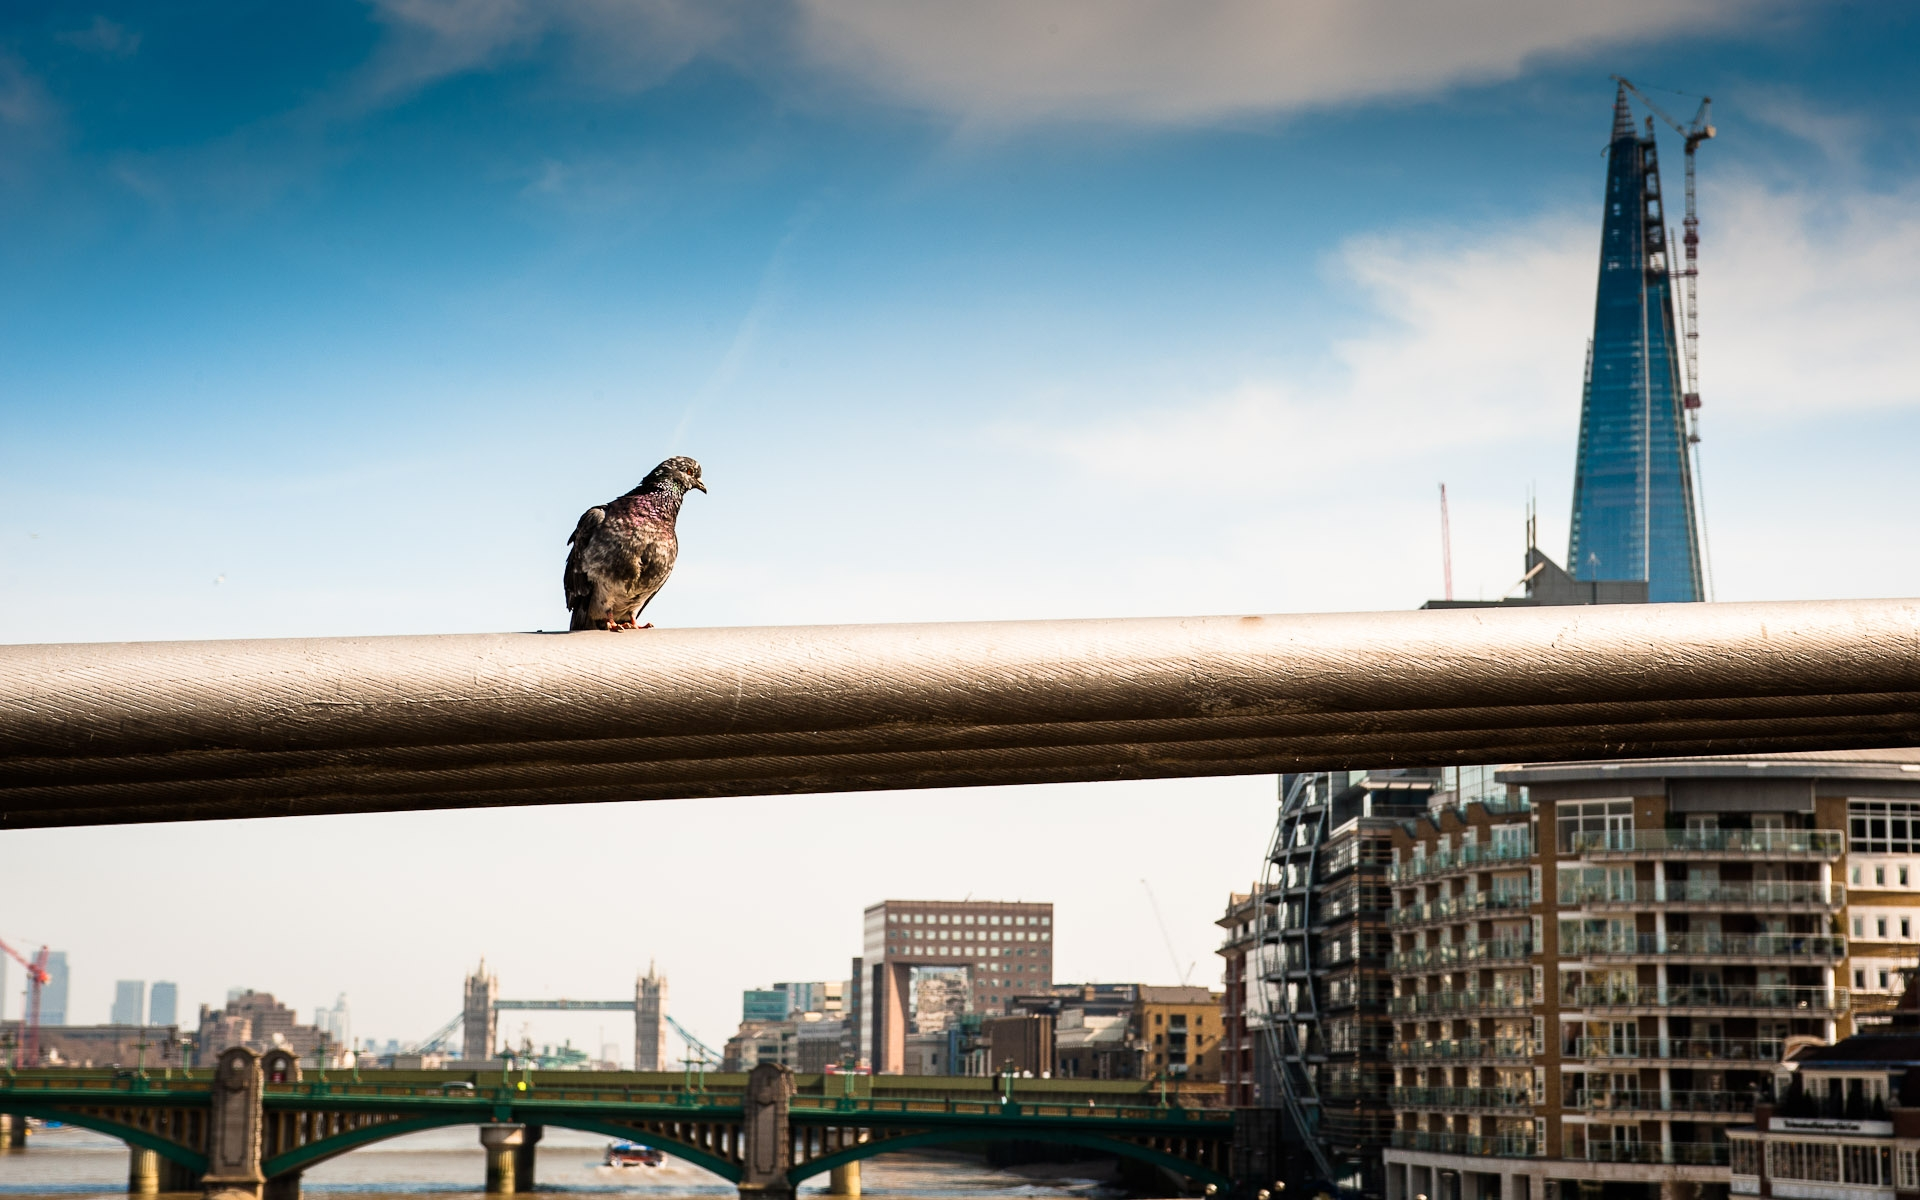 pigeon sat on bridge with the shard and tower bridge in background